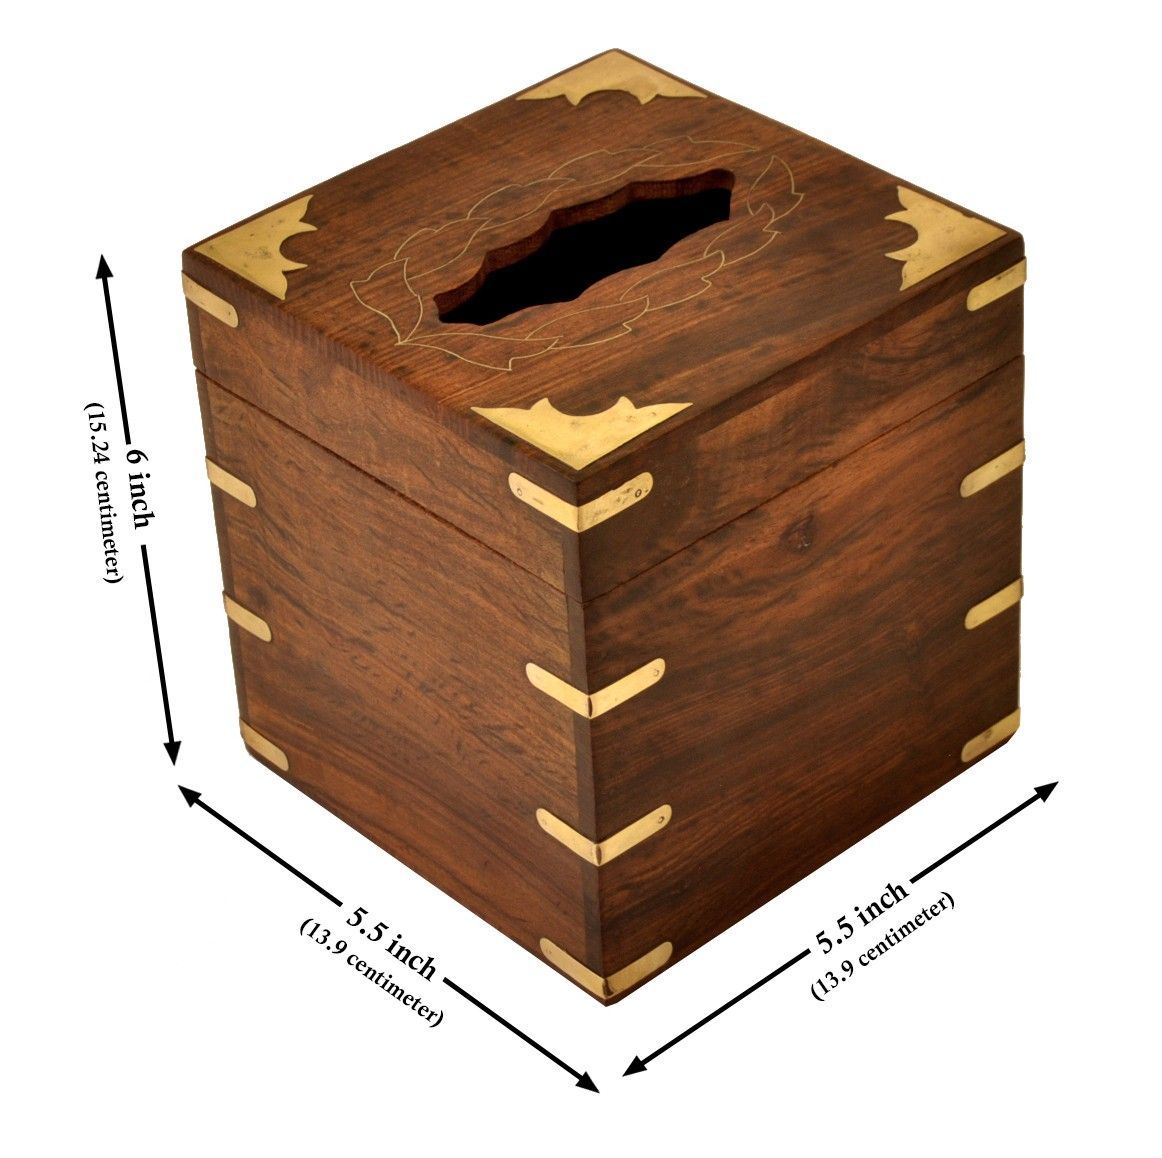 Rustic Tabletops Handmade 5 3 Rosewood Upright Tissue Napkin Holder Box With Brass Inlays Tissue Boxes Tissue Box Covers Handmade Wooden